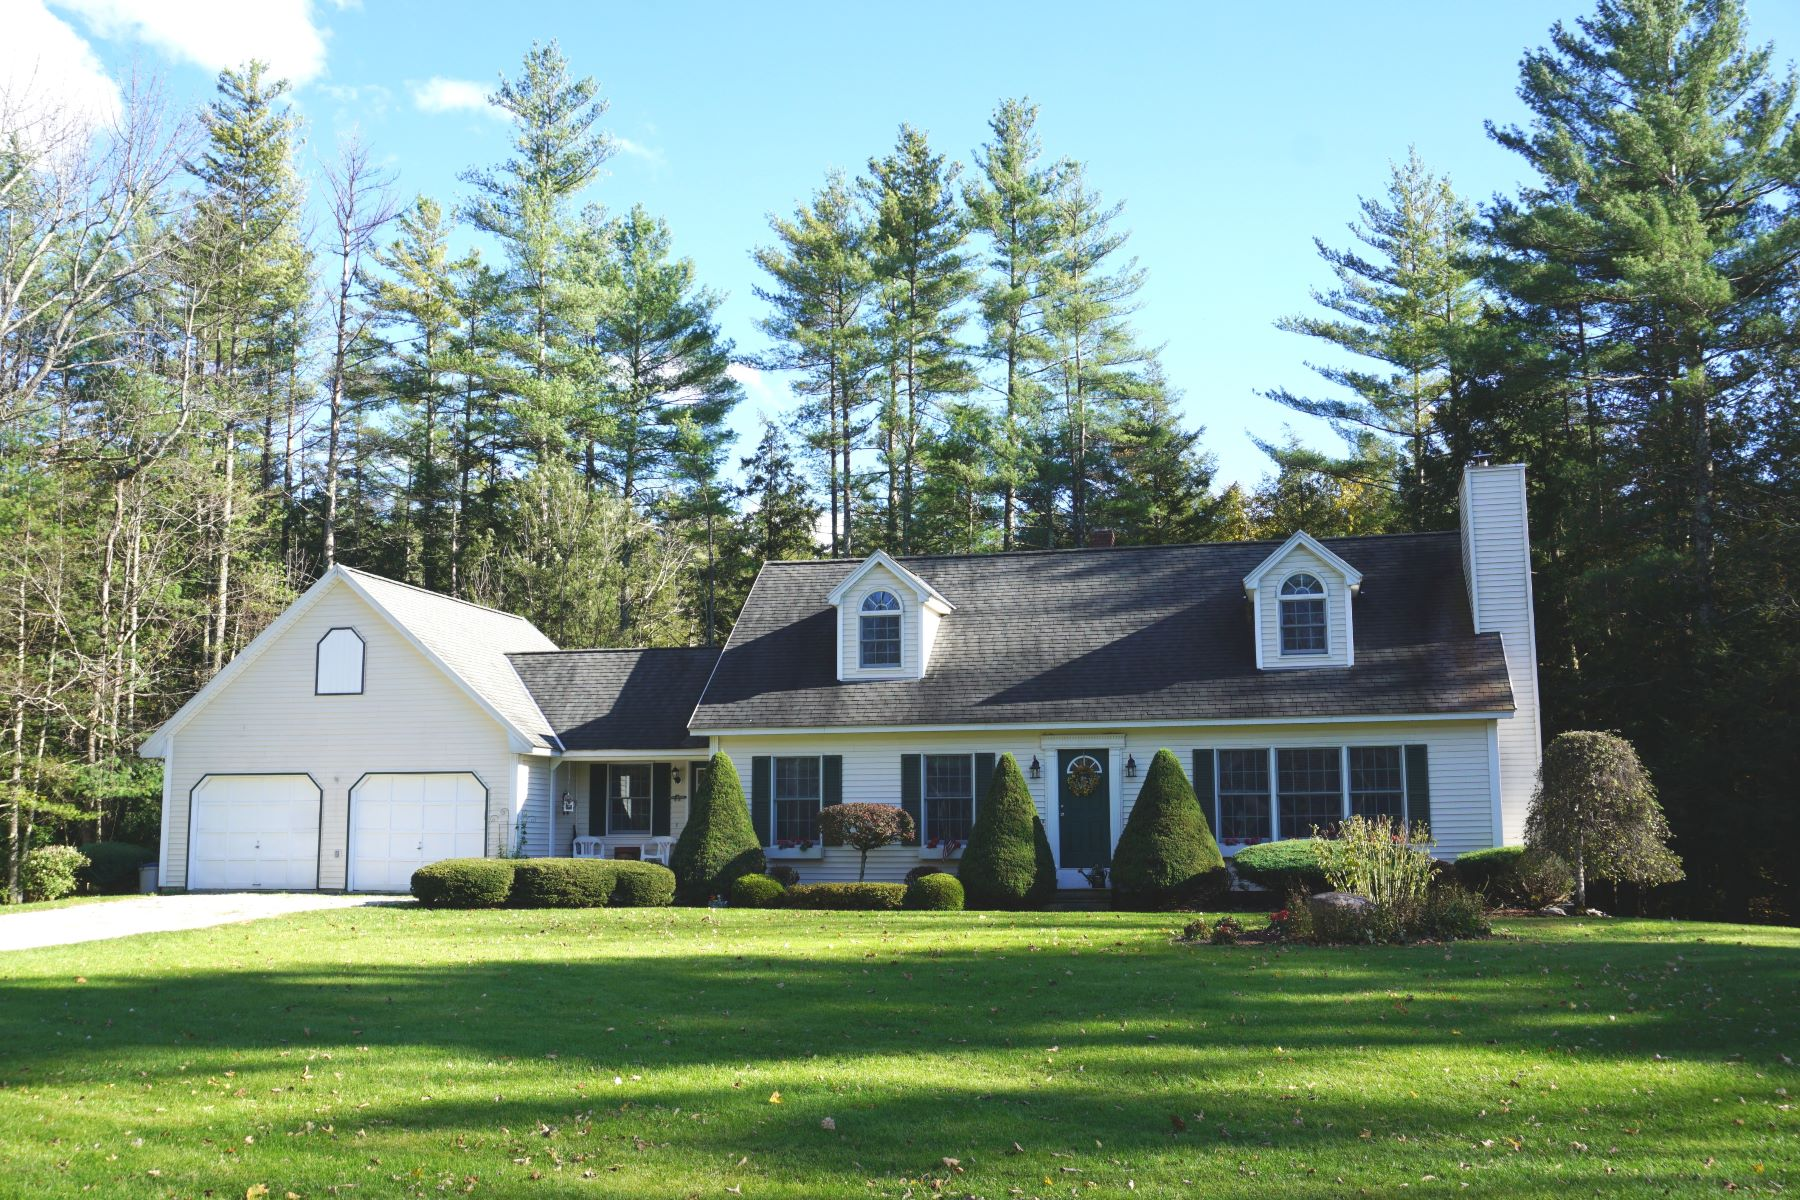 Single Family Home for Sale at WALLINGFORD - 10 ACRES 900 Haven Hill Rd Wallingford, Vermont 05773 United States